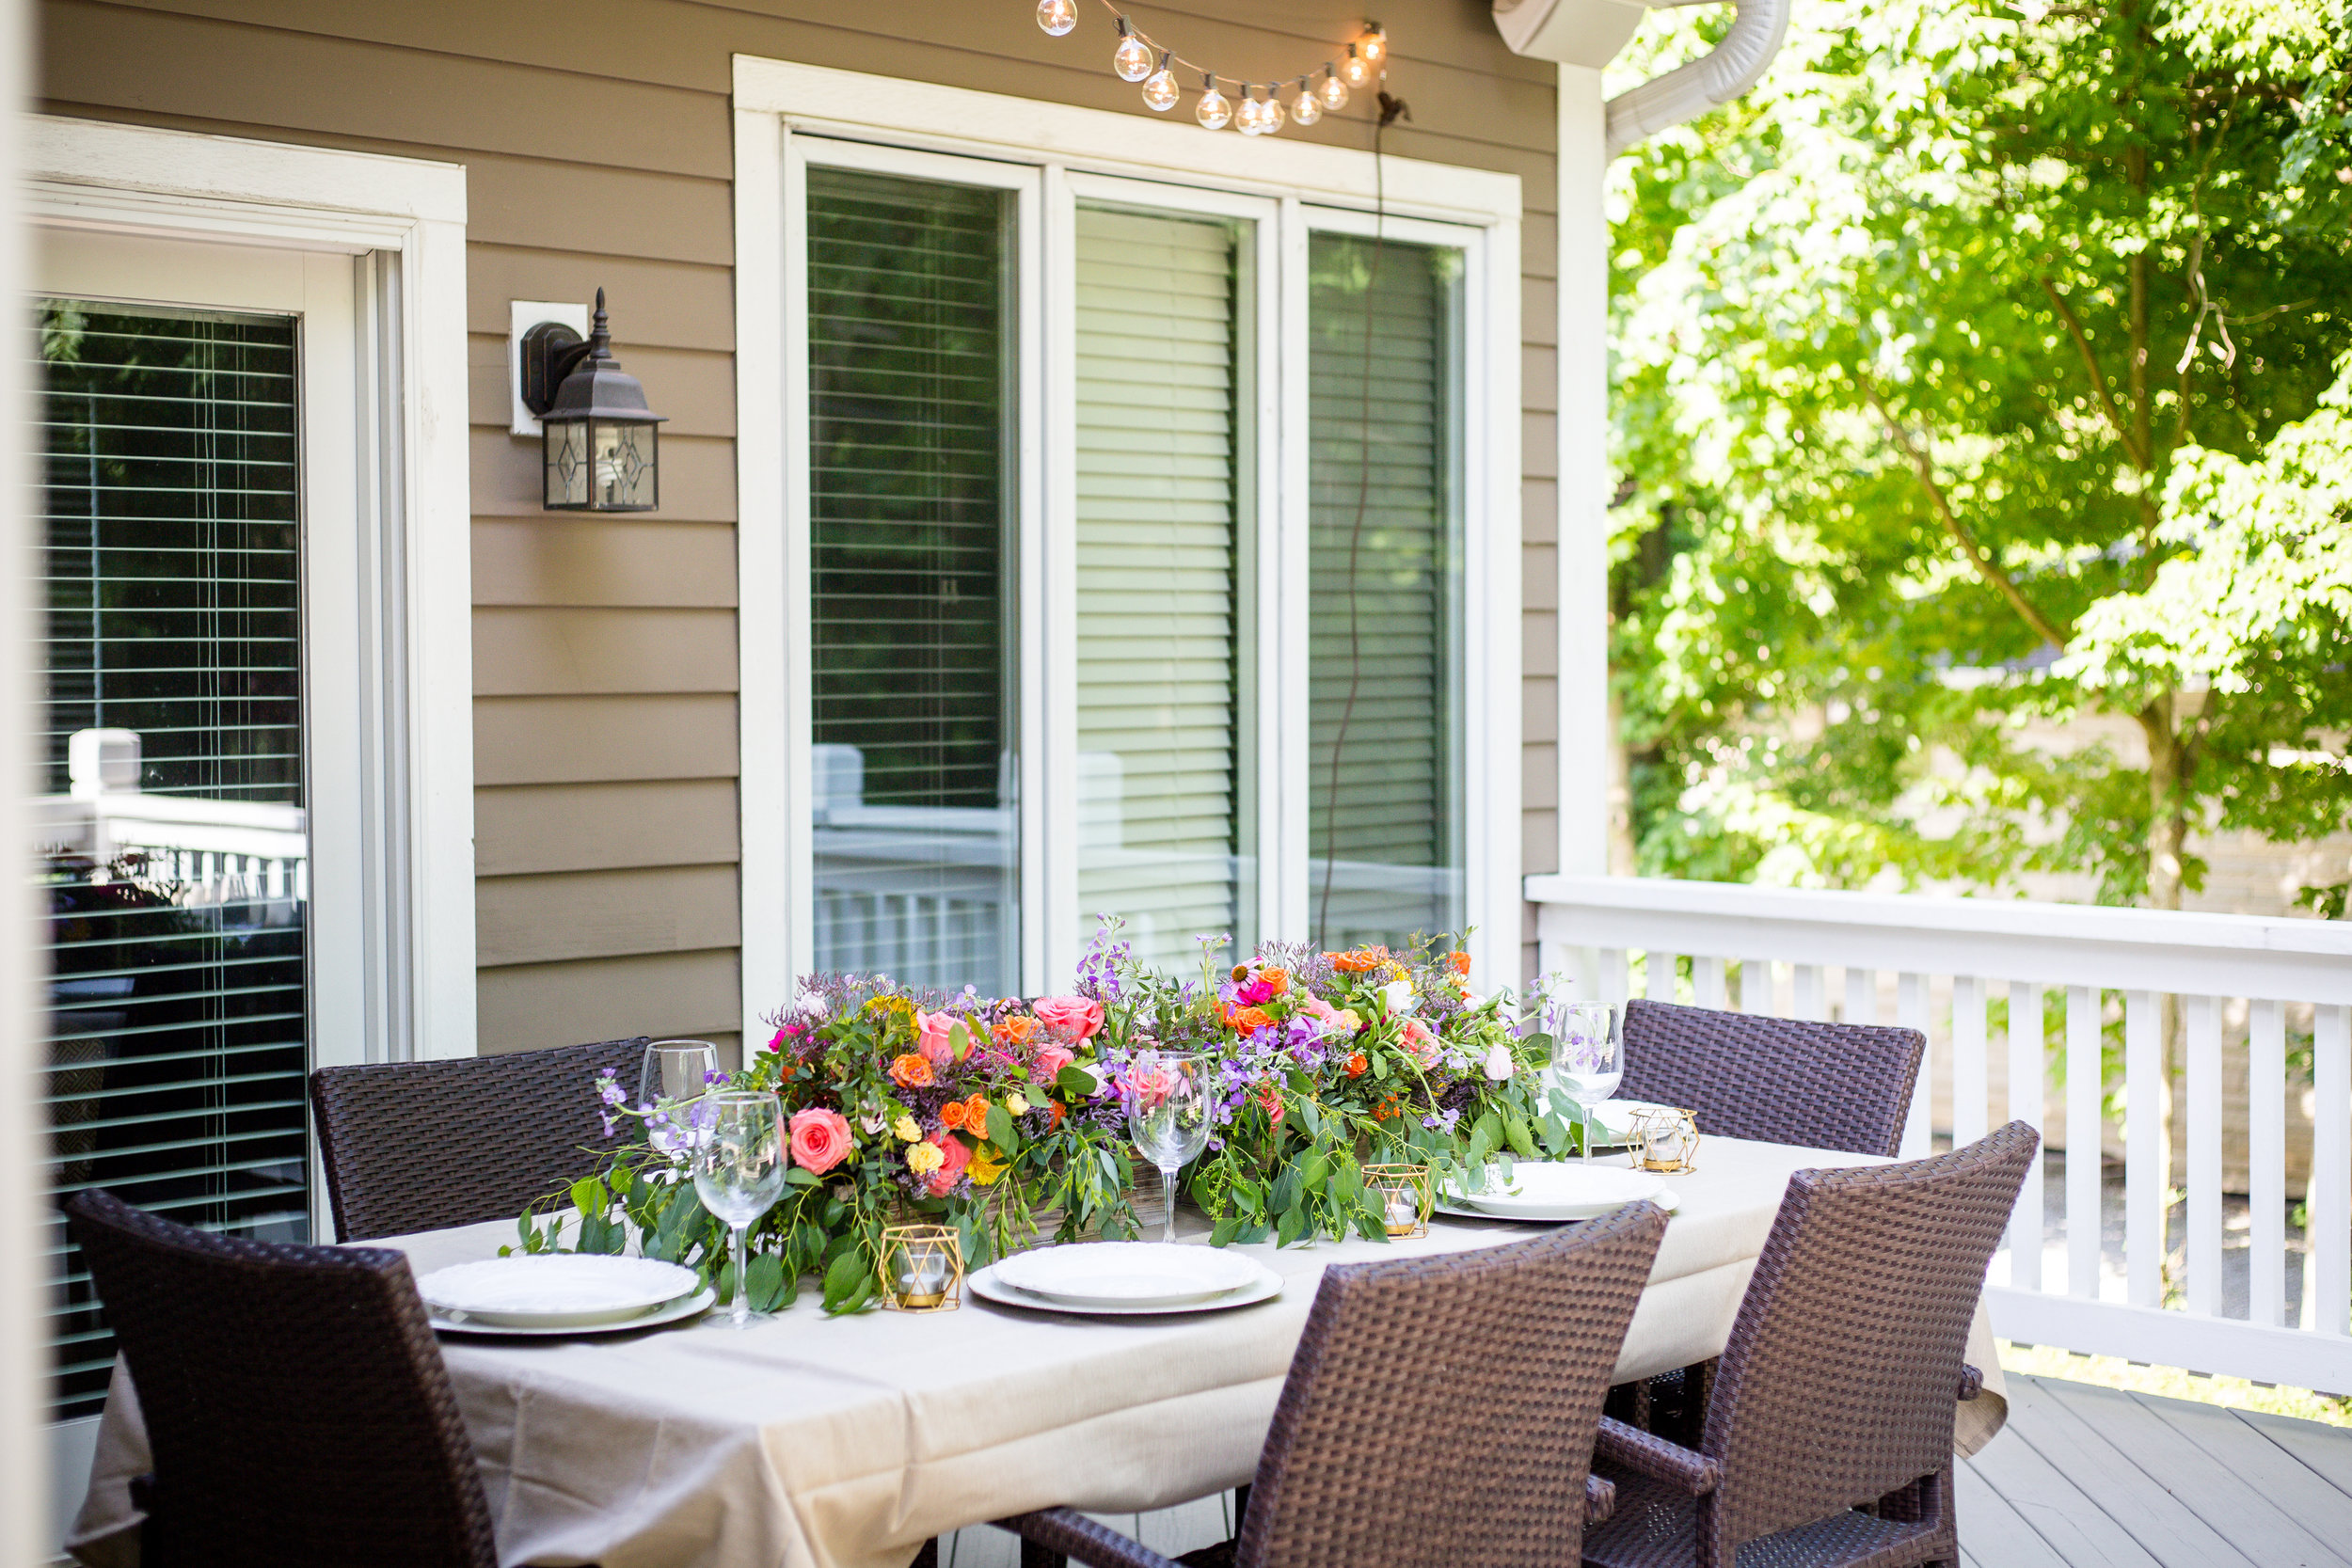 Summer floral table centerpiece